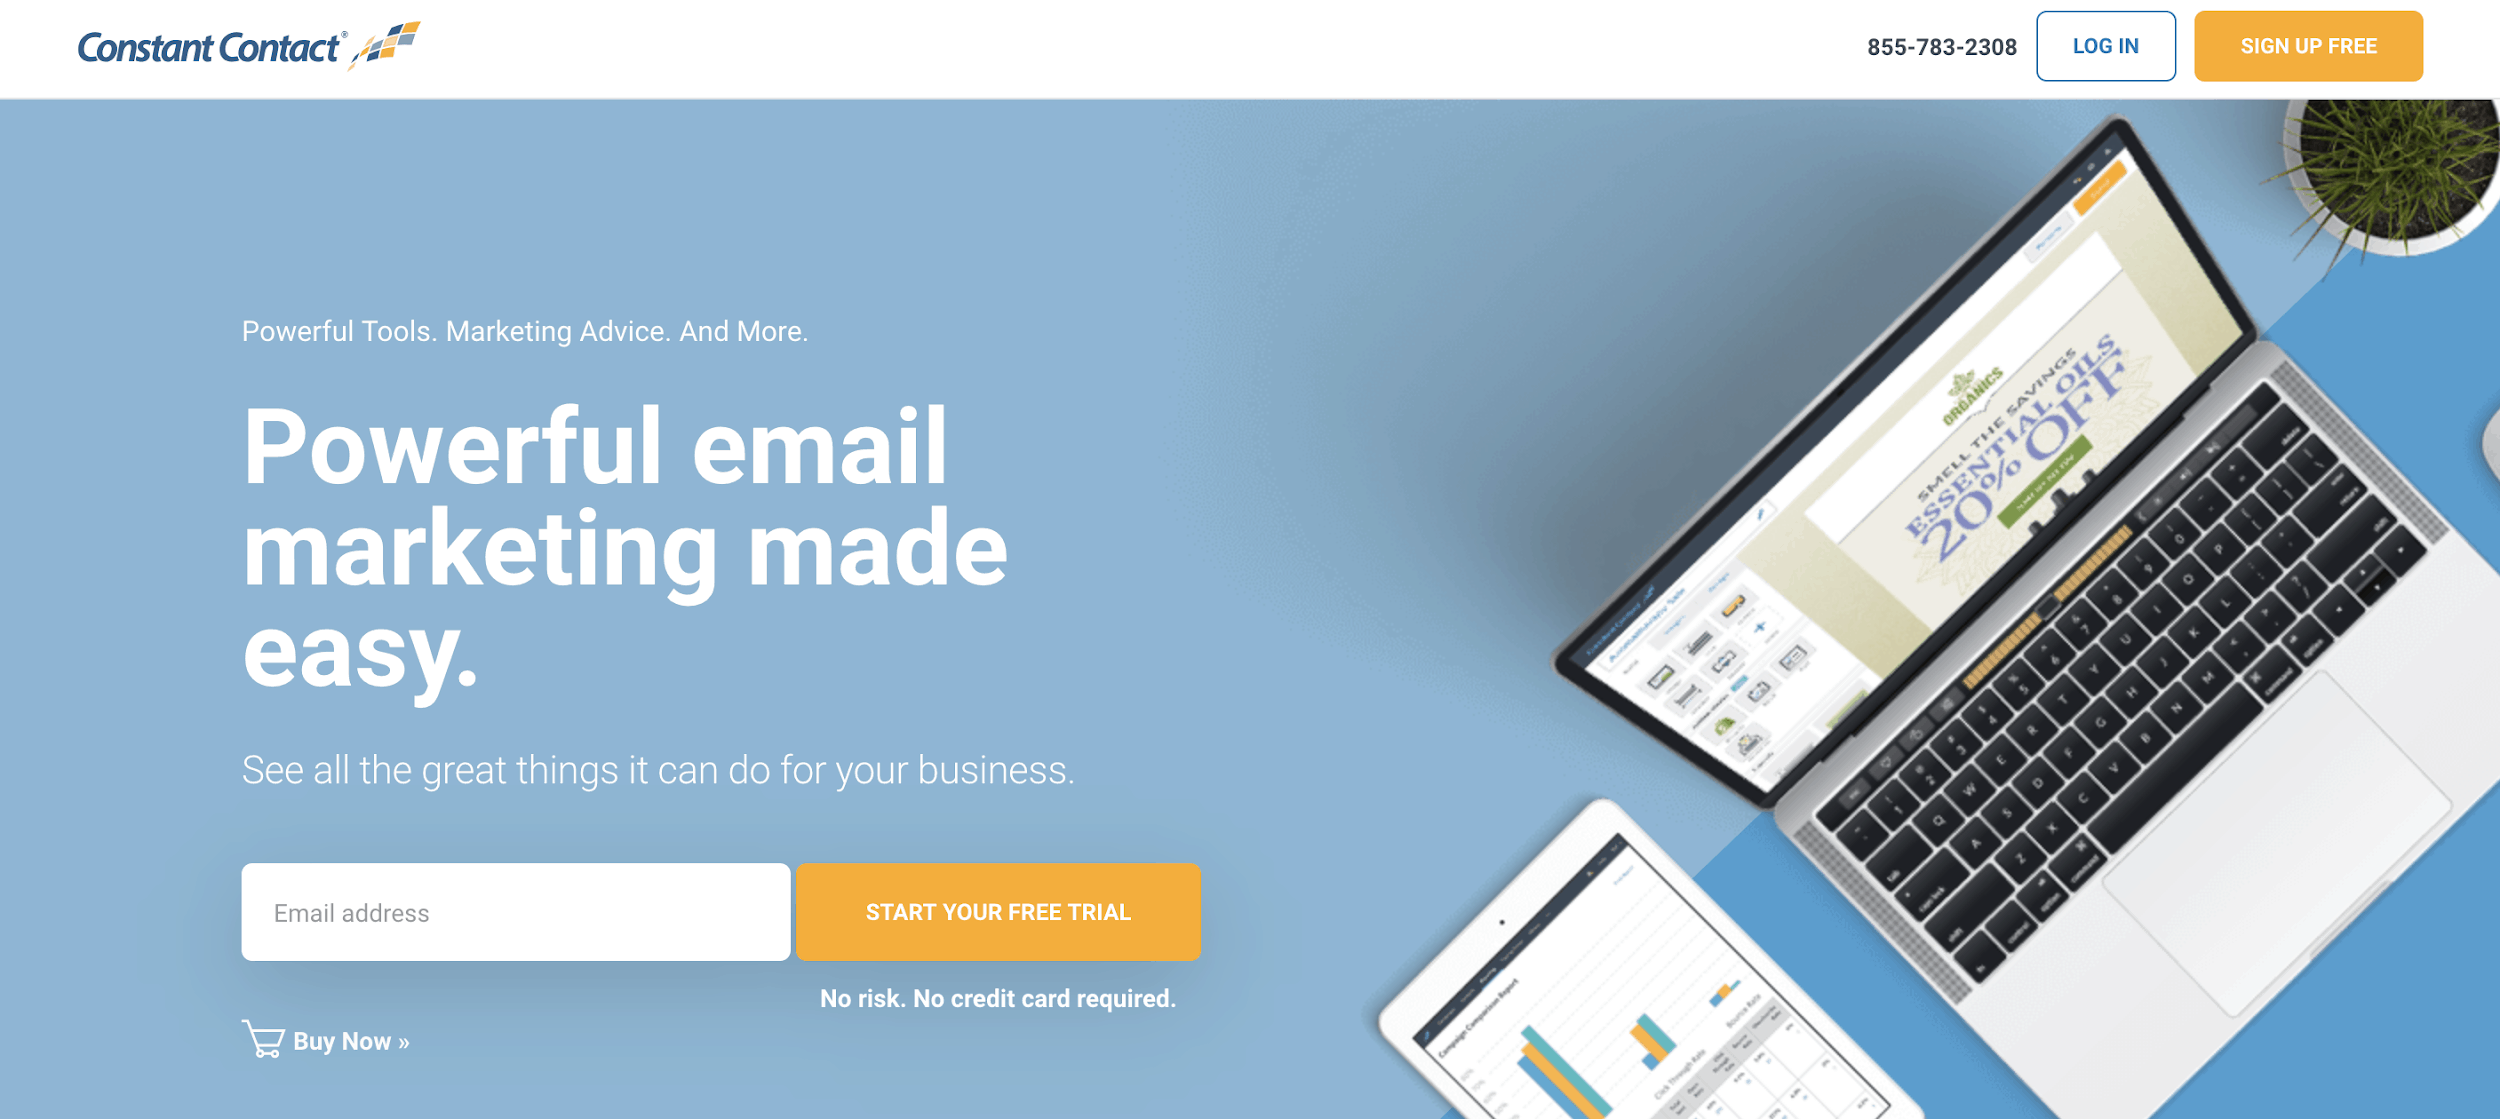 7 Best Email Marketing Services with Free Trials-image3